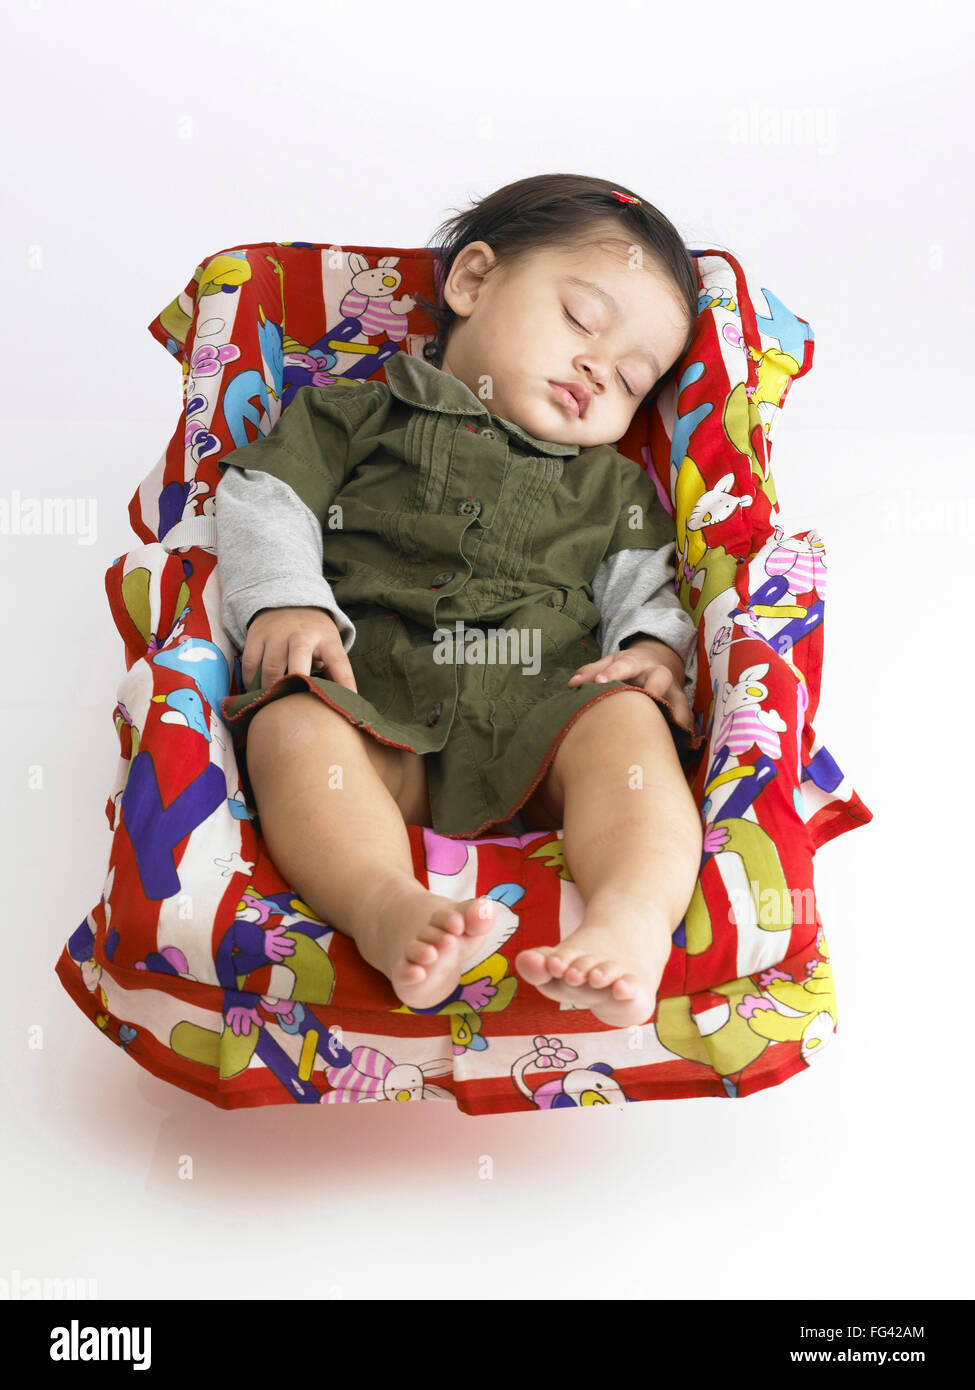 baby sleeping chair phil and teds lobster indian girl in mr 702o stock photo 95976012 alamy